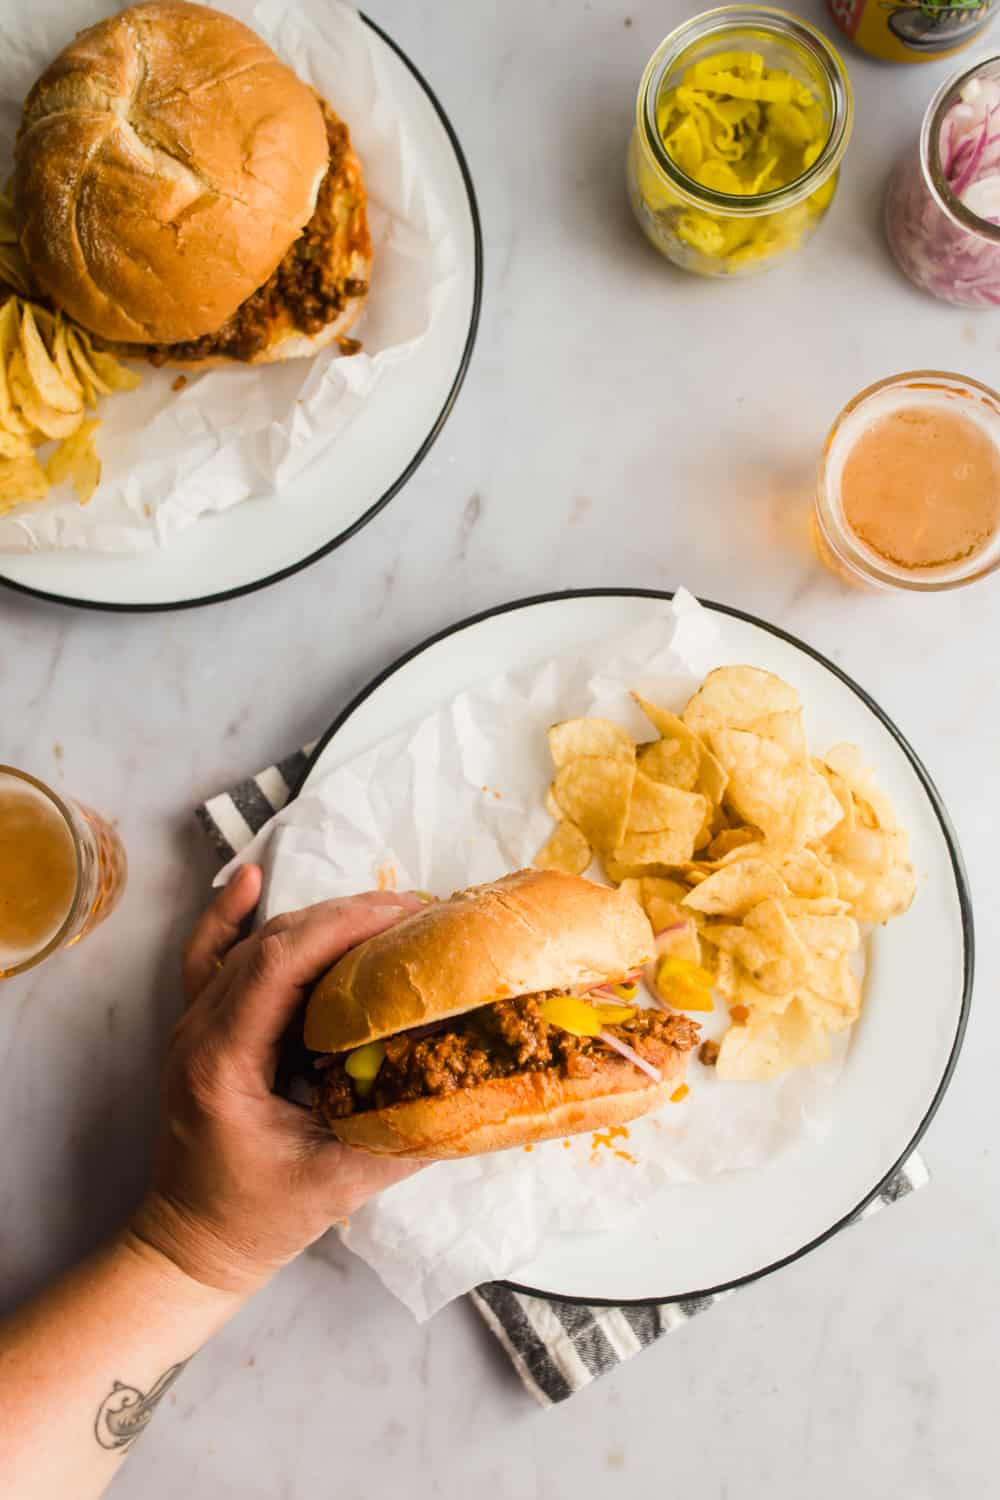 Sloppy joes in a bun on a plate with potato chips on the side.